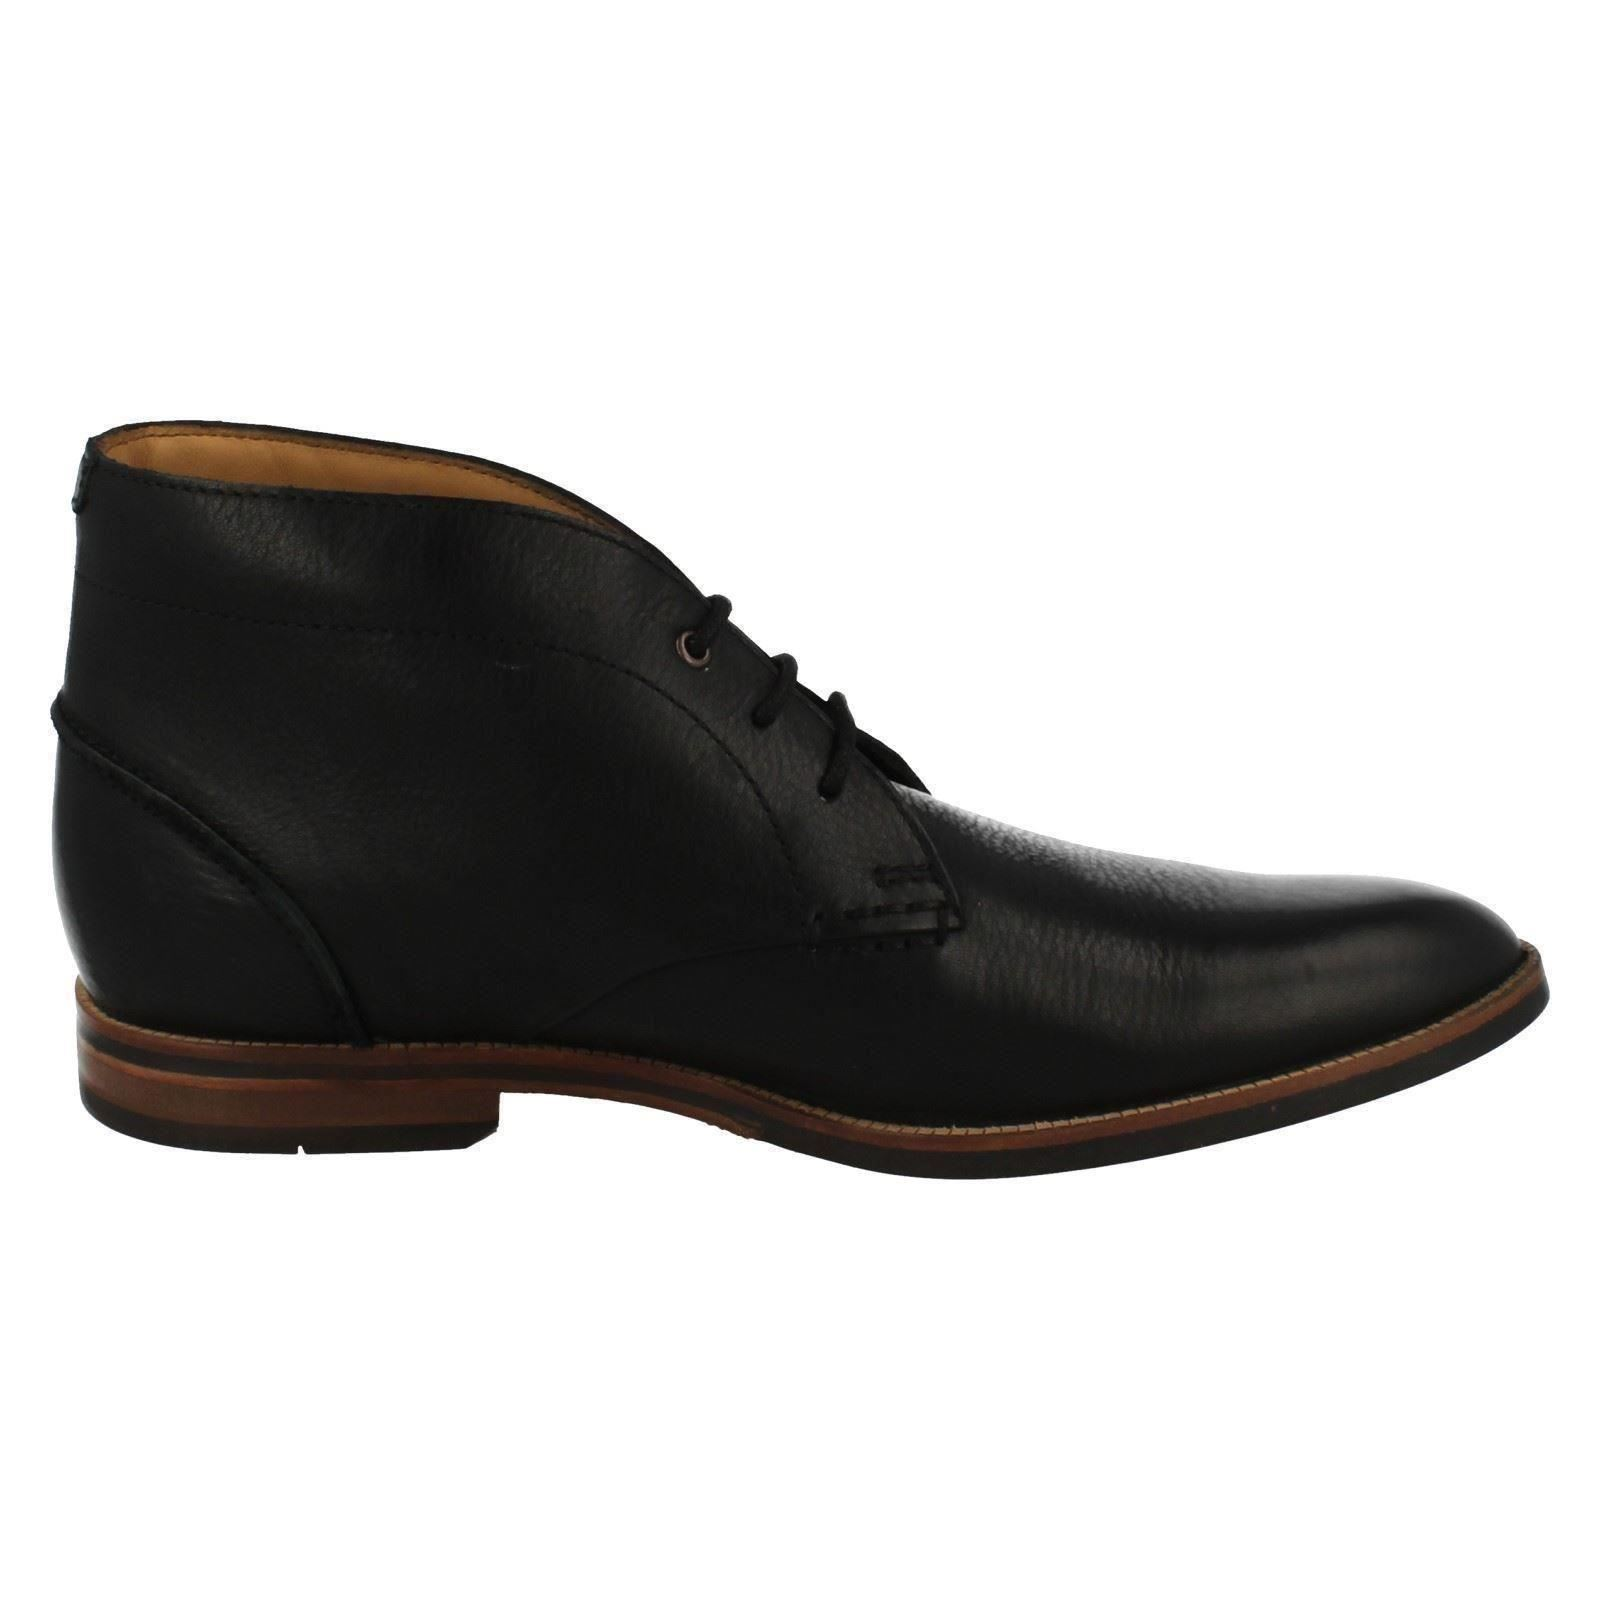 Herrenschuhe Mens Clarks Smart Ankle Boots Broyd Mid